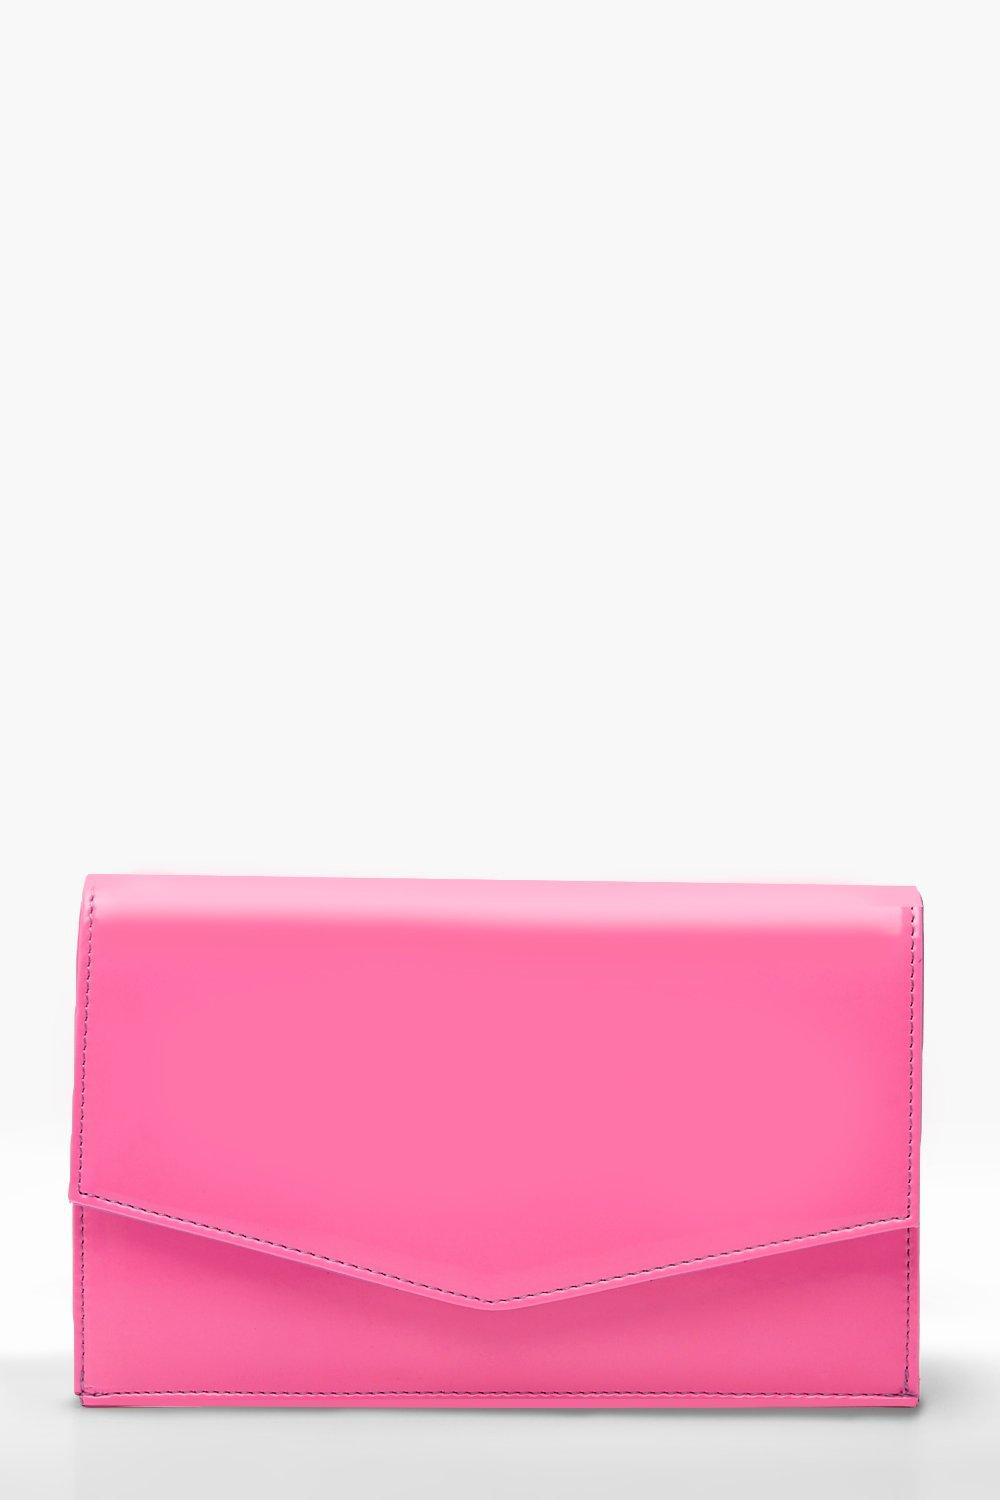 Neon Envelope Clutch & Chain